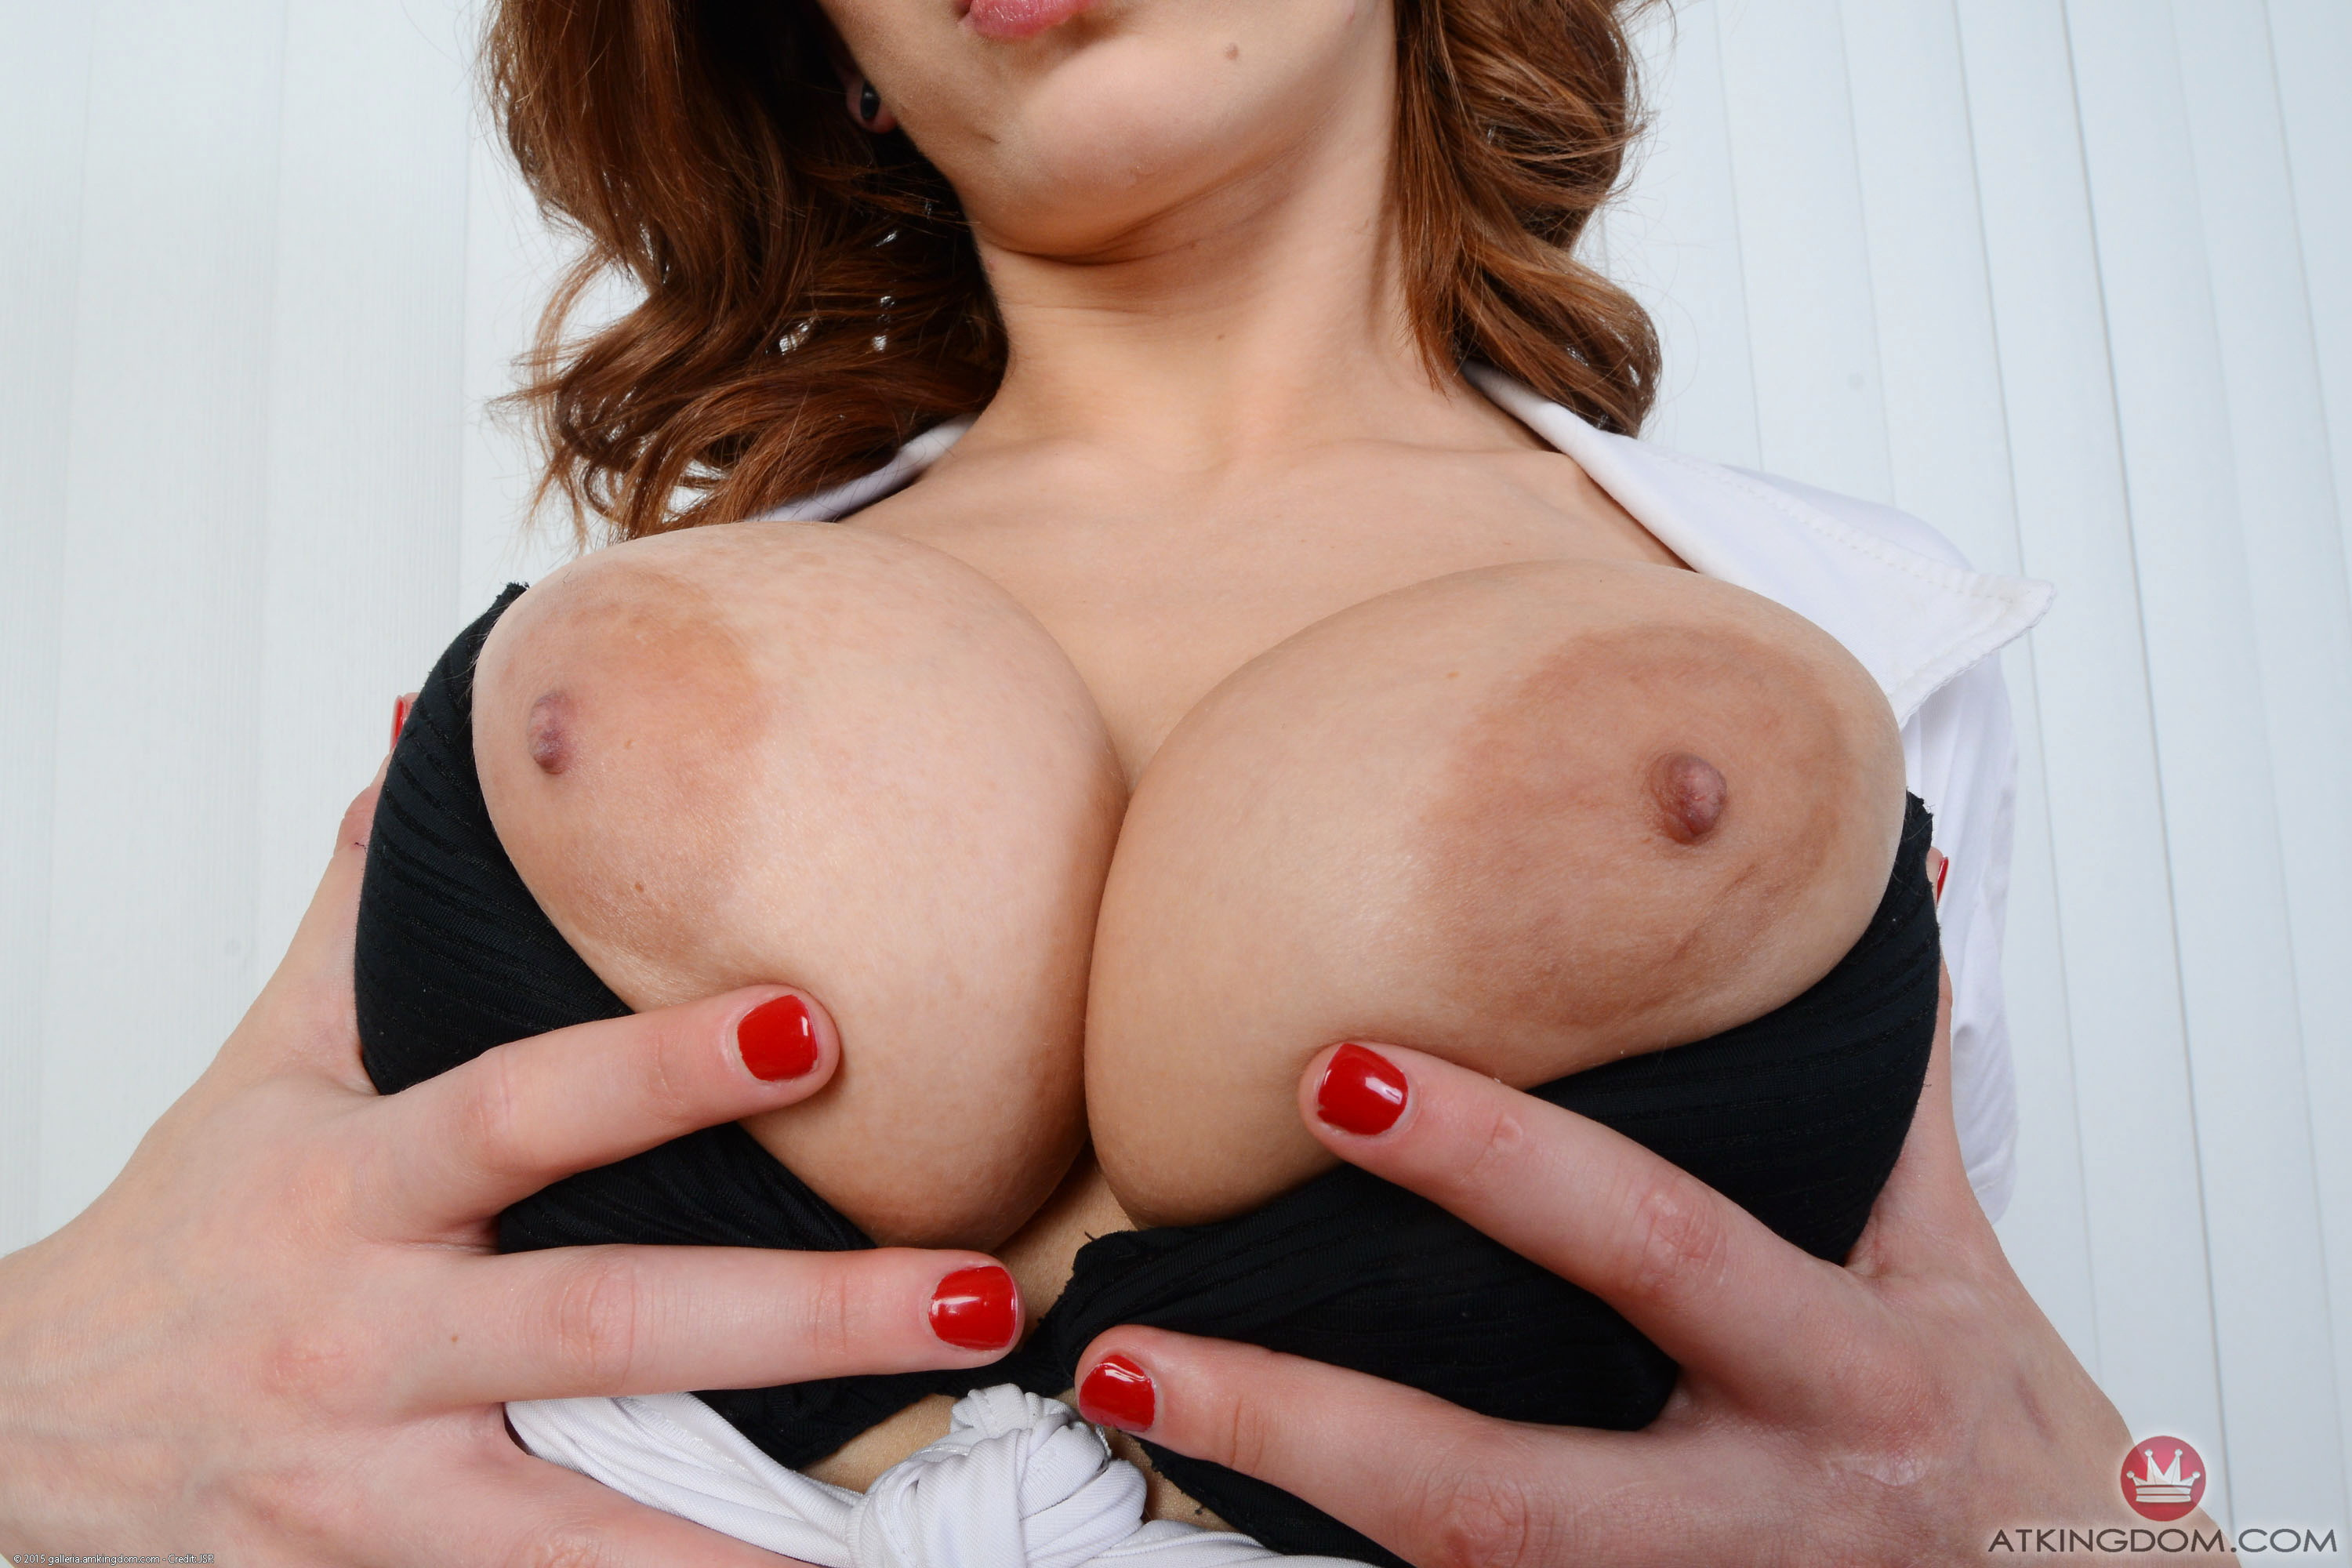 Svelte girl with graceful face open up impressive breasts